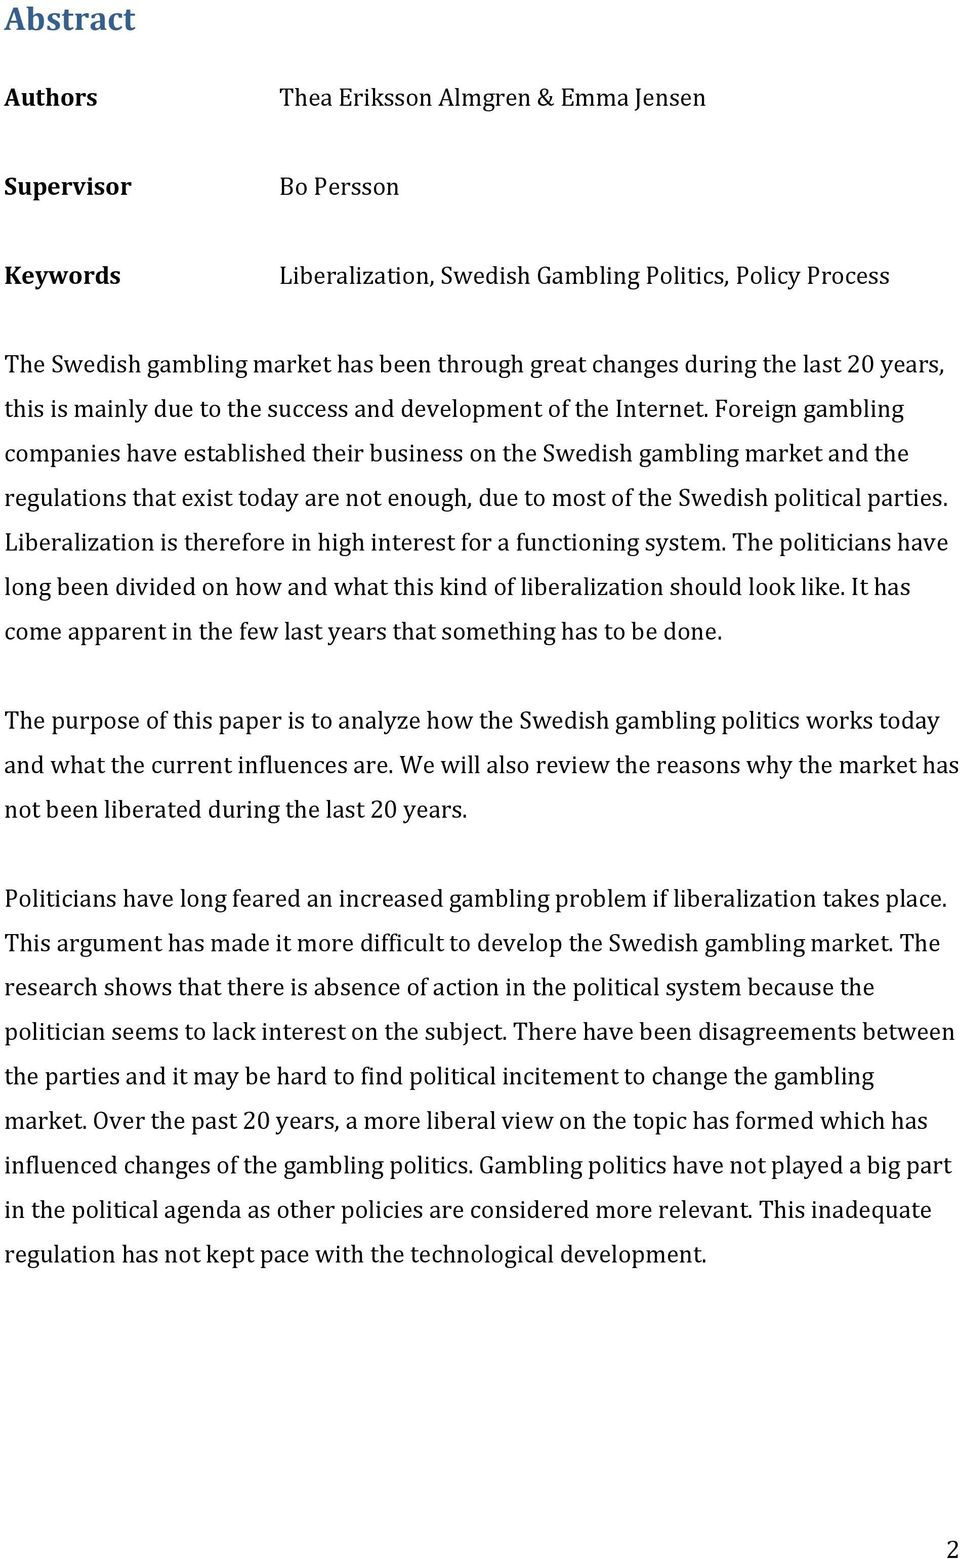 Foreign gambling companies have established their business on the Swedish gambling market and the regulations that exist today are not enough, due to most of the Swedish political parties.